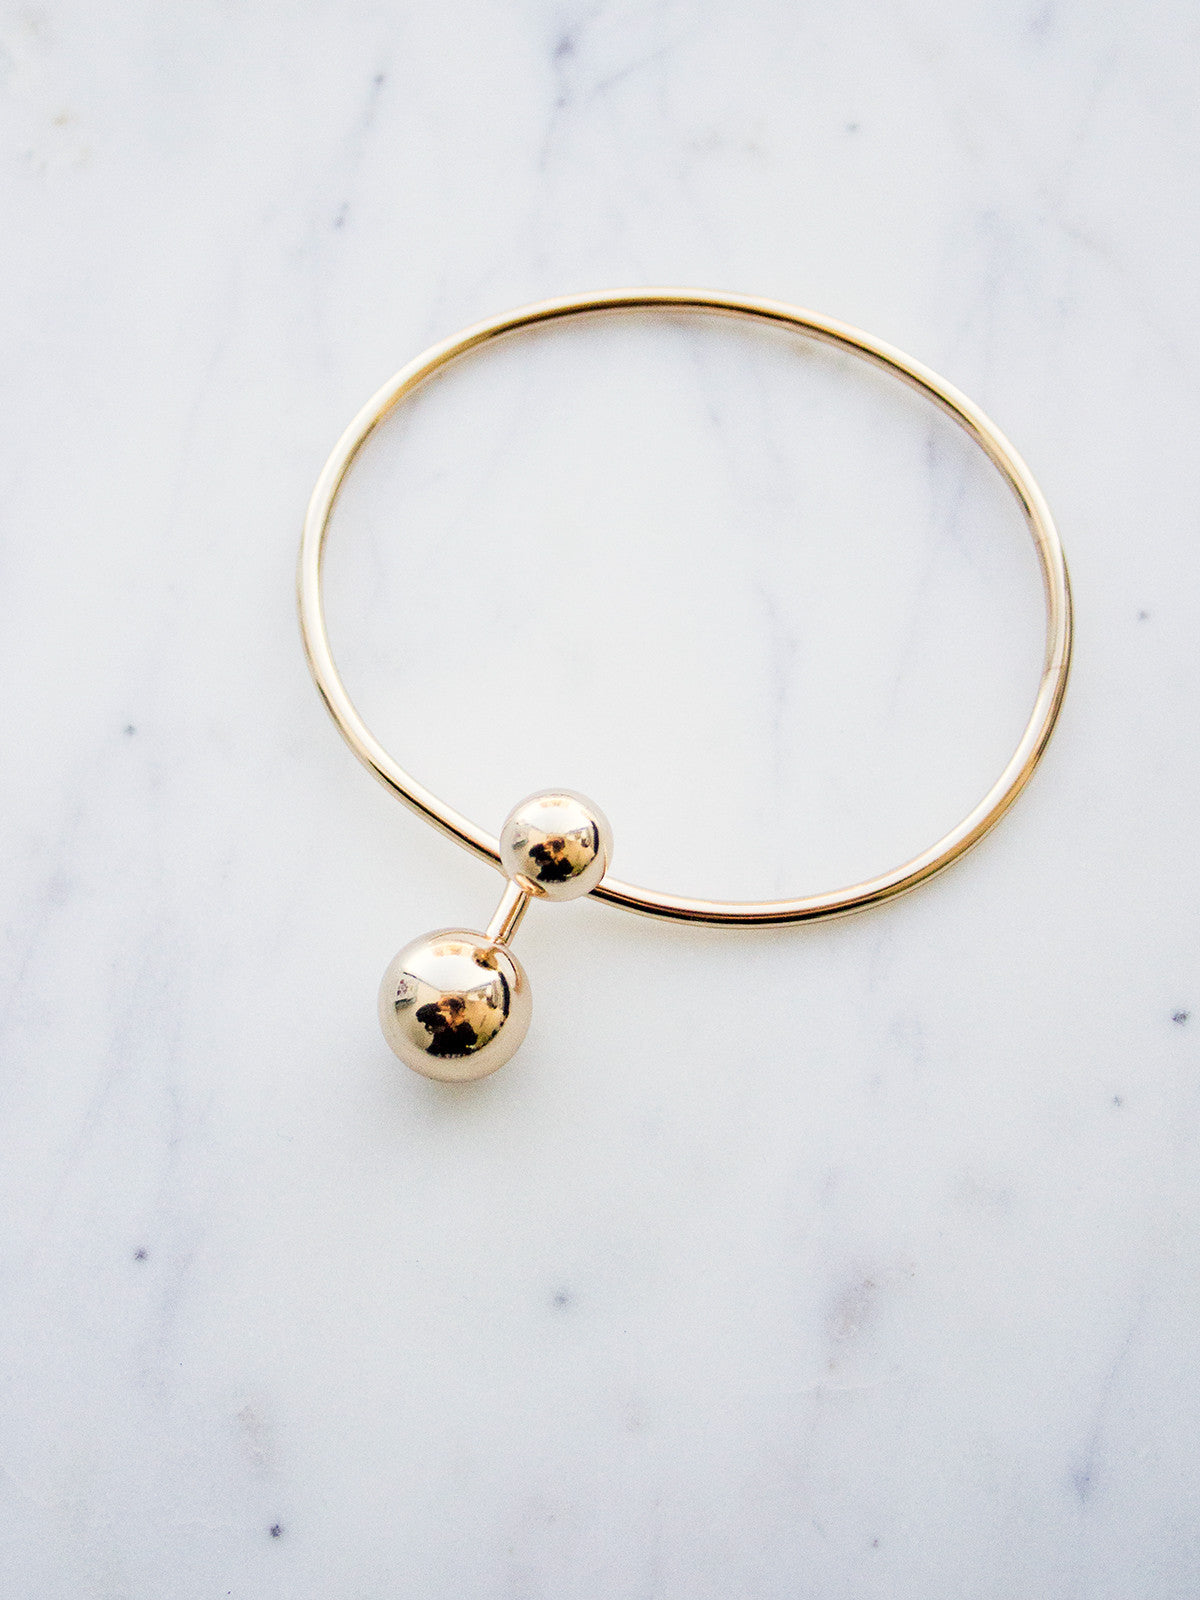 SAY YOU, SAY ME GOLD BRACELET